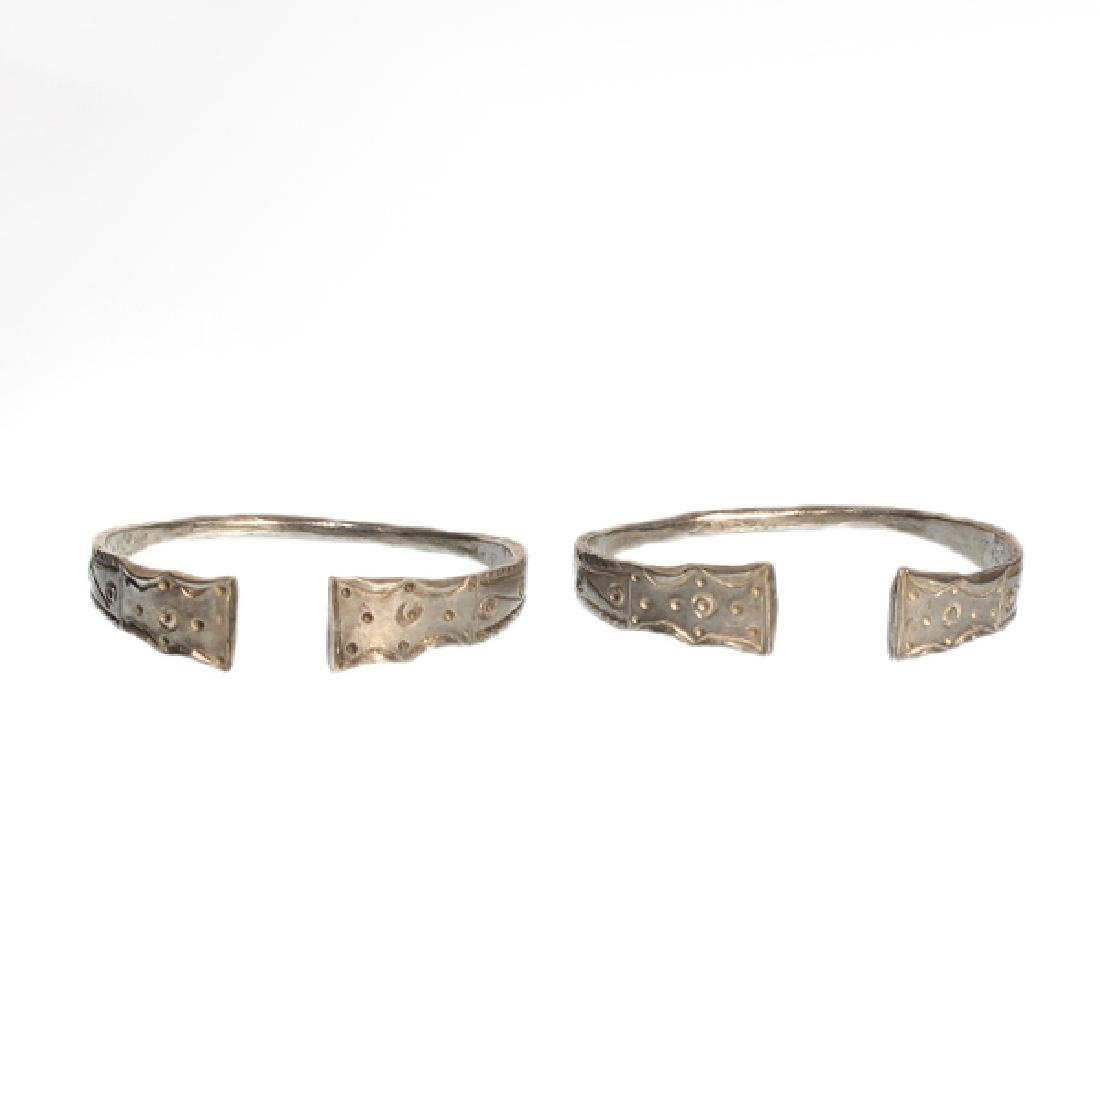 Pair of Celtic Silver Bracelets, Iron Age